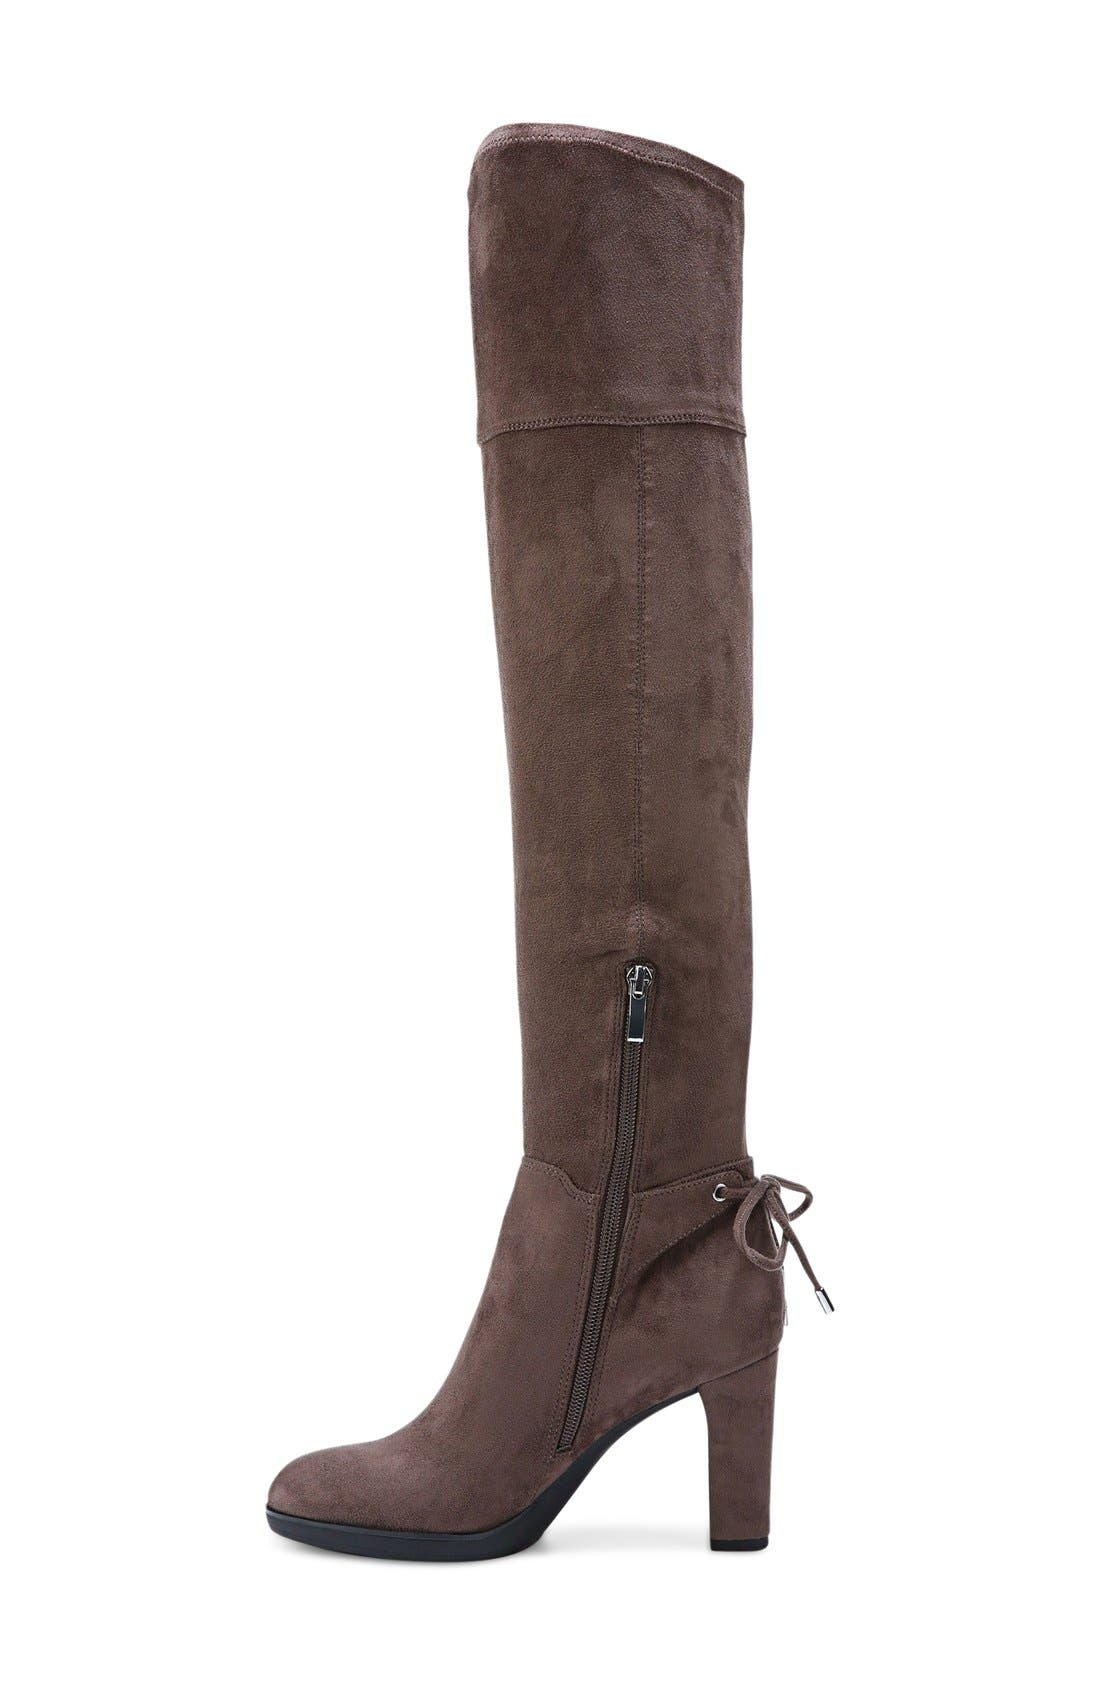 Ivanea Over the Knee Boot,                             Alternate thumbnail 2, color,                             Taupe Suede